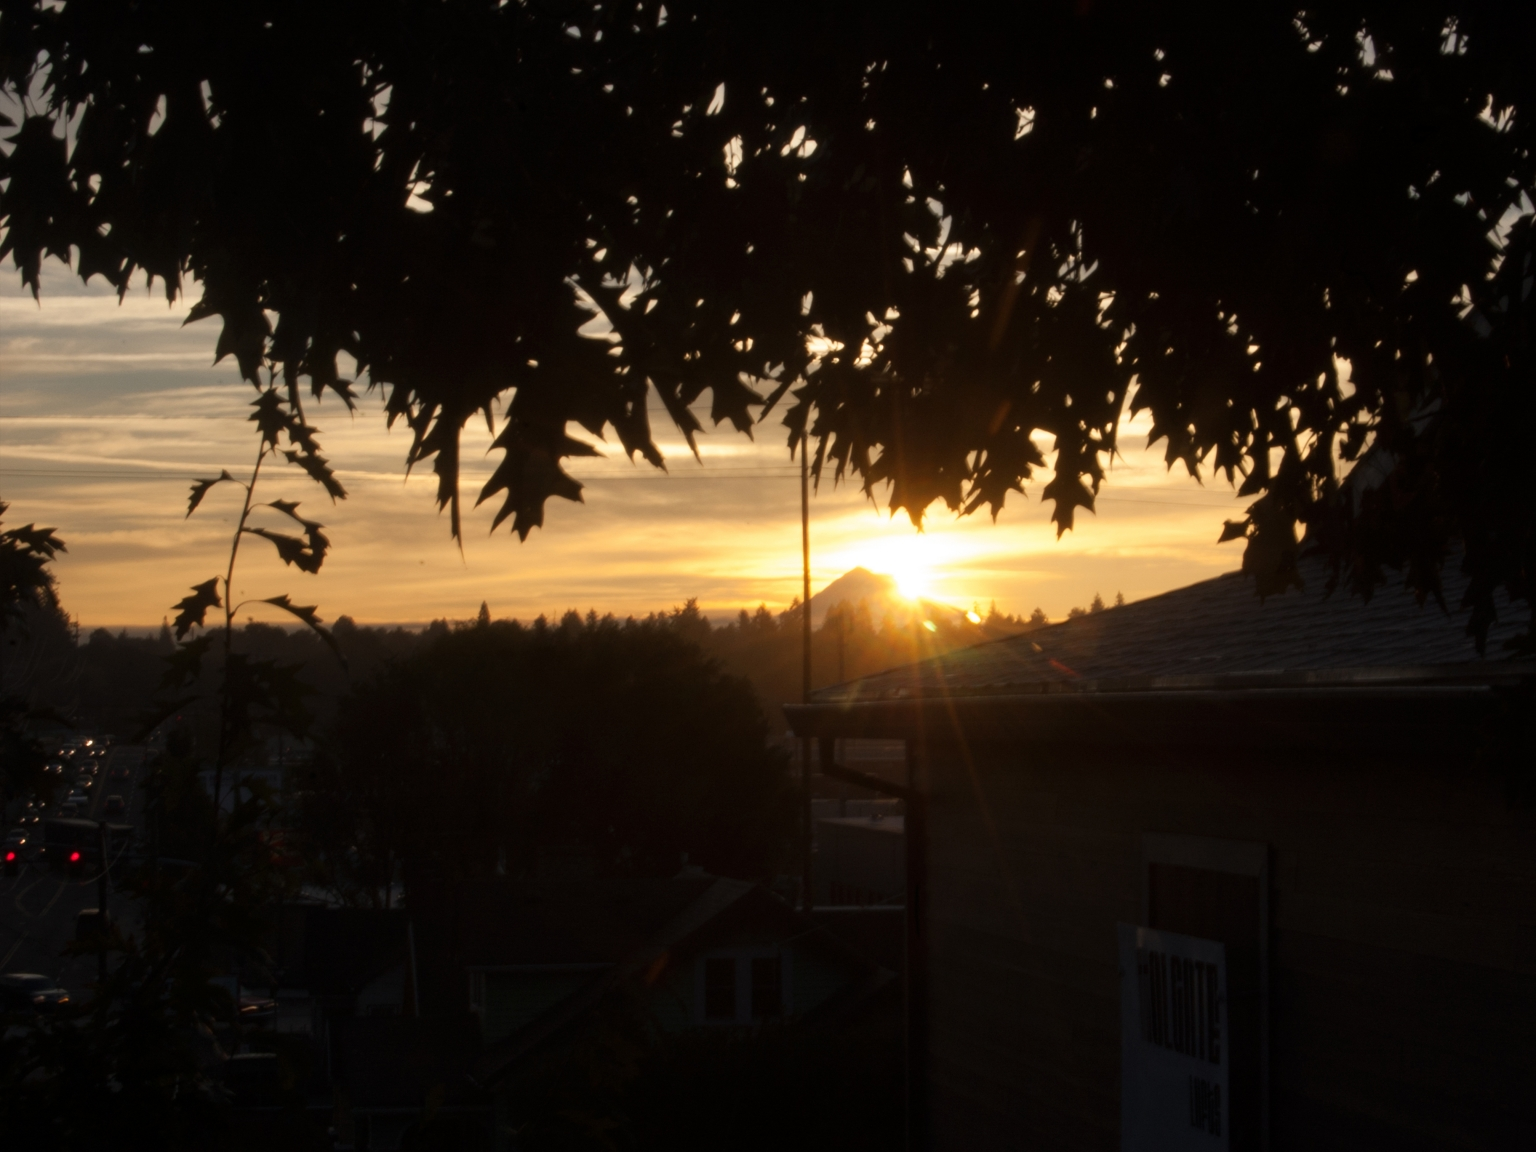 Autumnal Hood Day, 08 October 2015